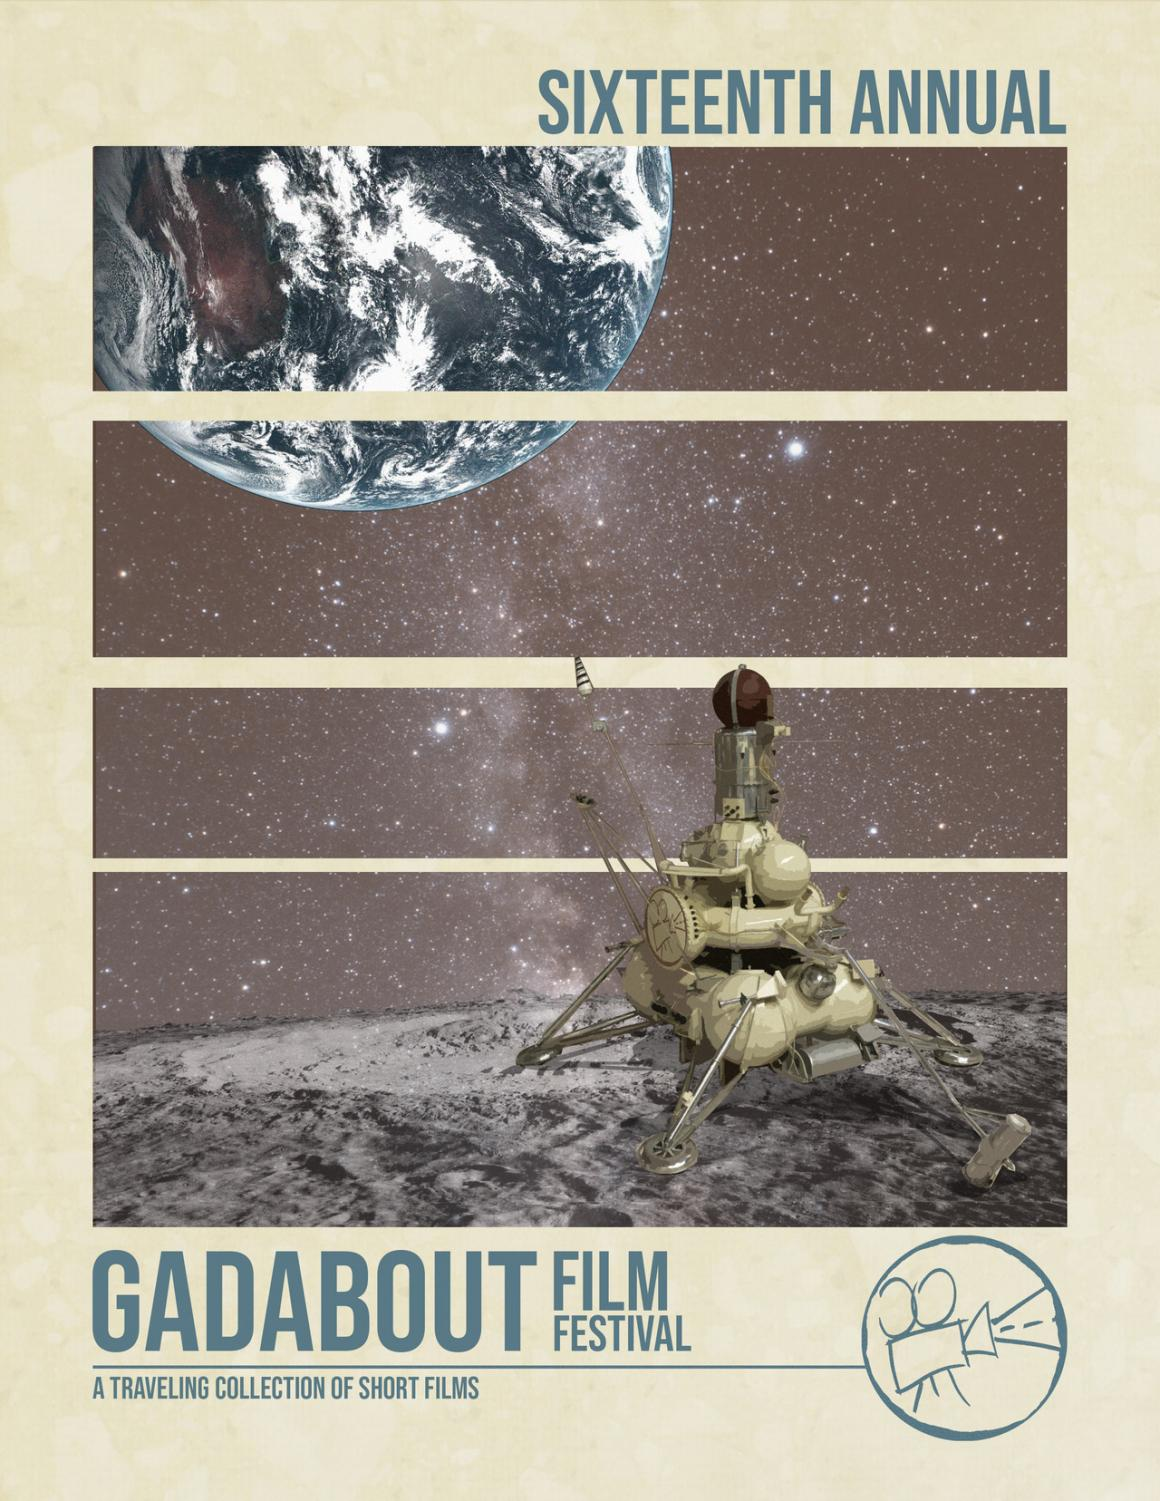 Courtesy of the Gadabout Film Festival